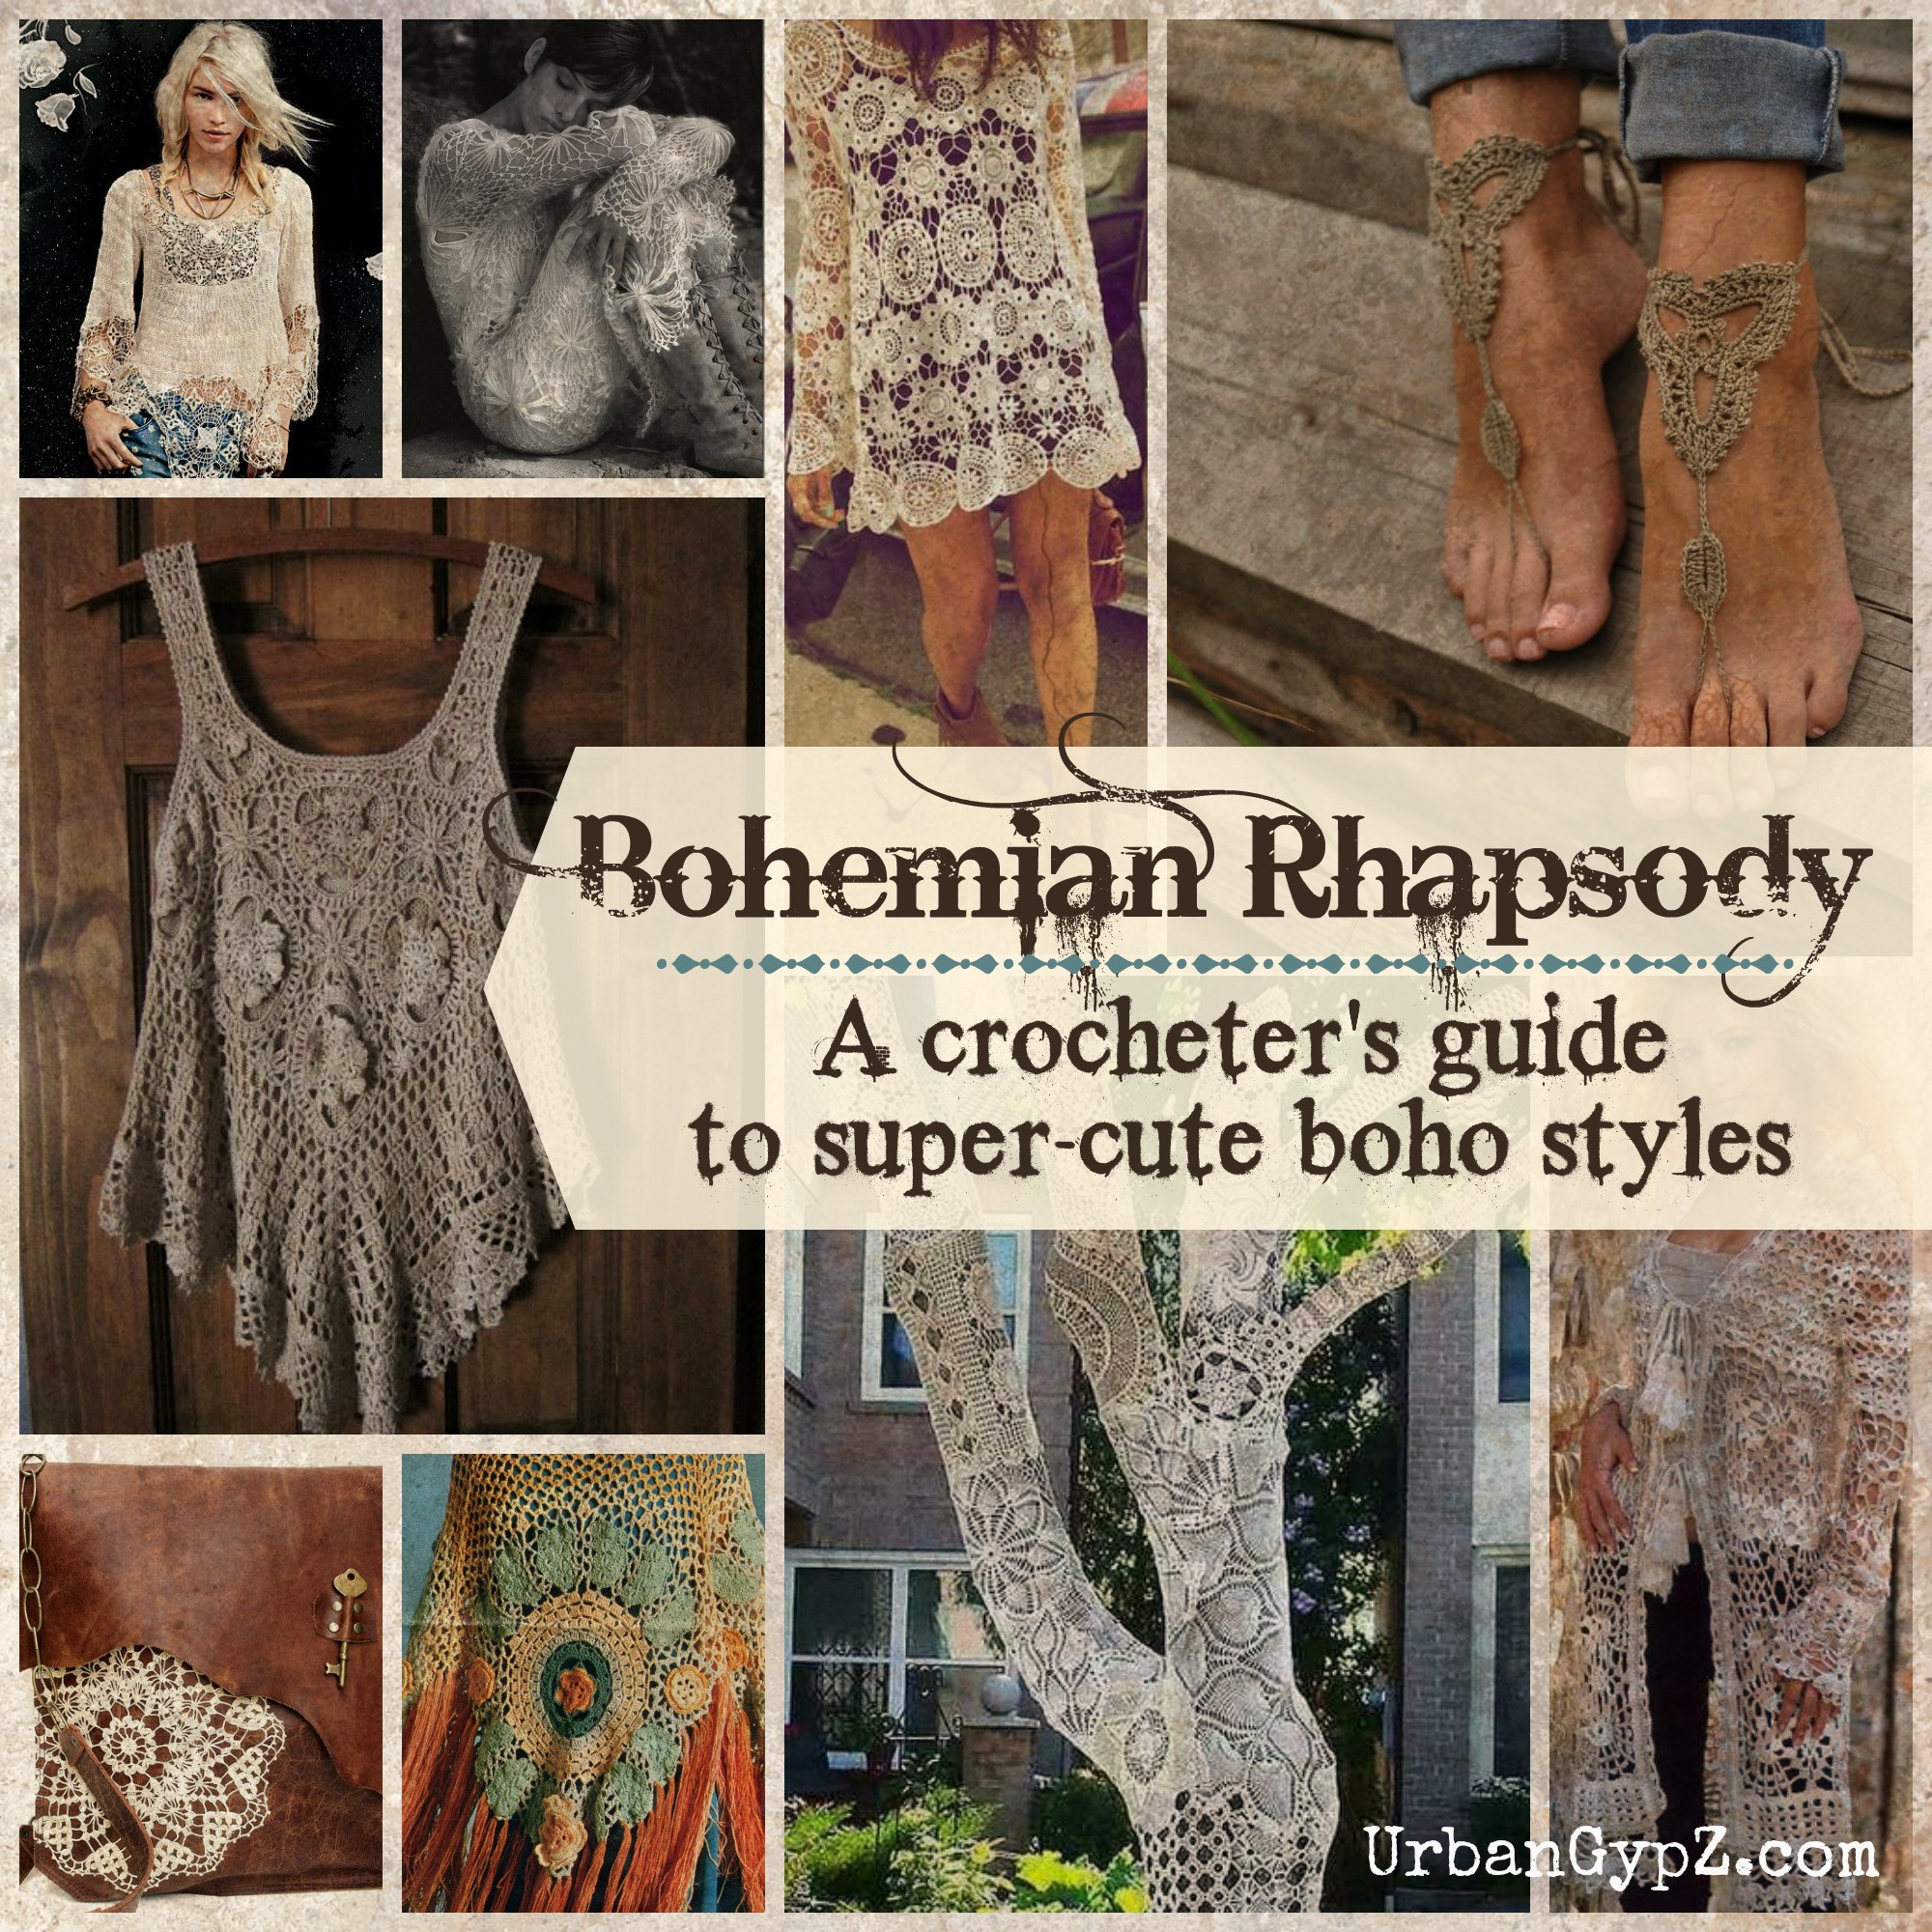 Bohemian Rhapsody A guide to boho crochet patterns